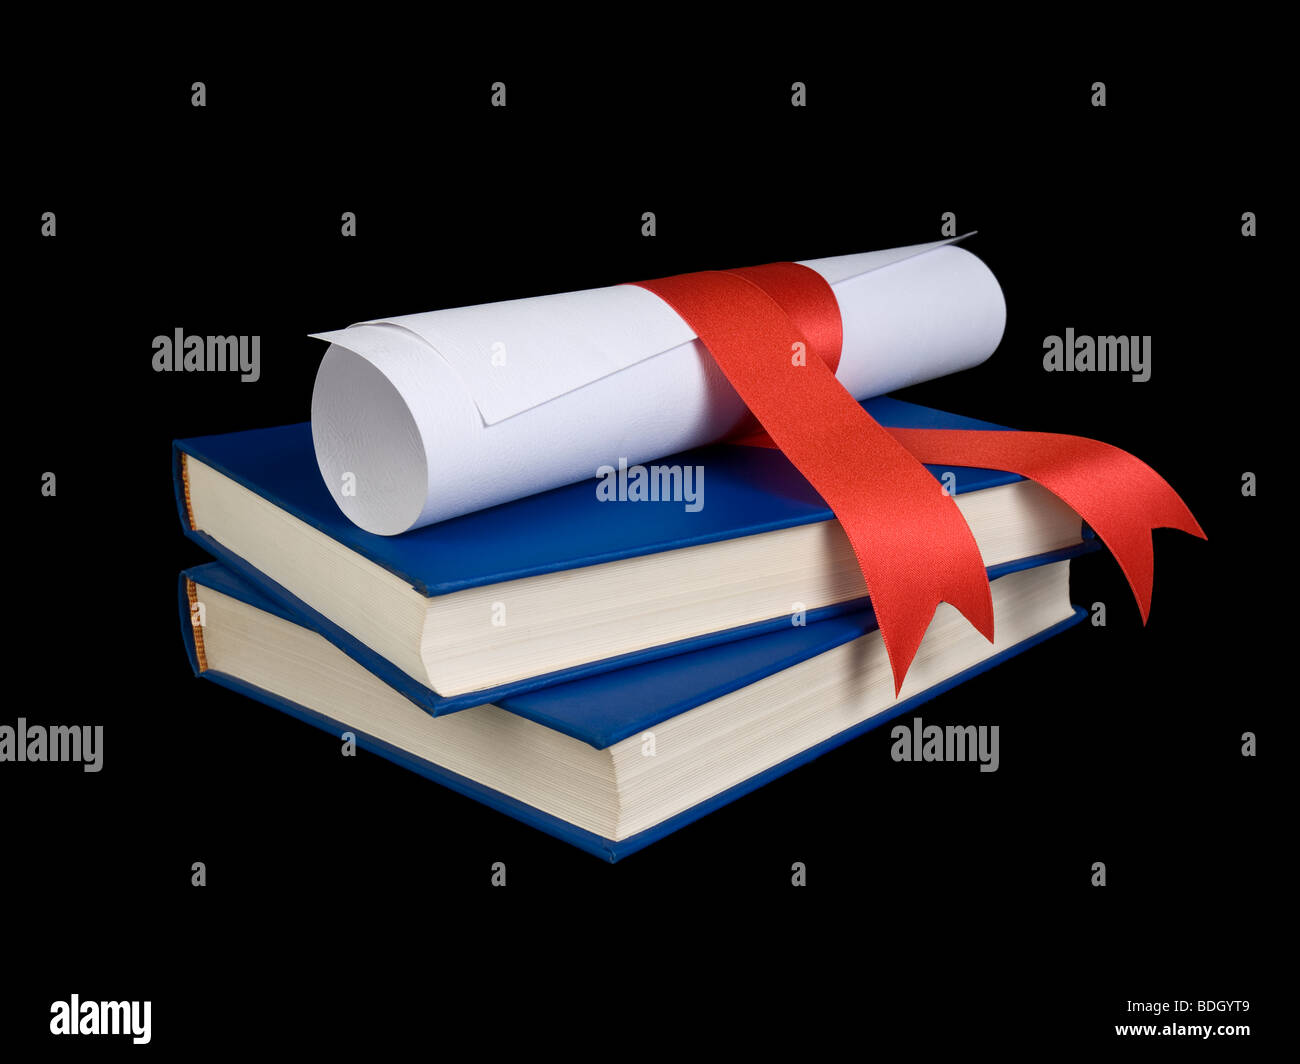 A diploma with red ribbon over blue books. - Stock Image